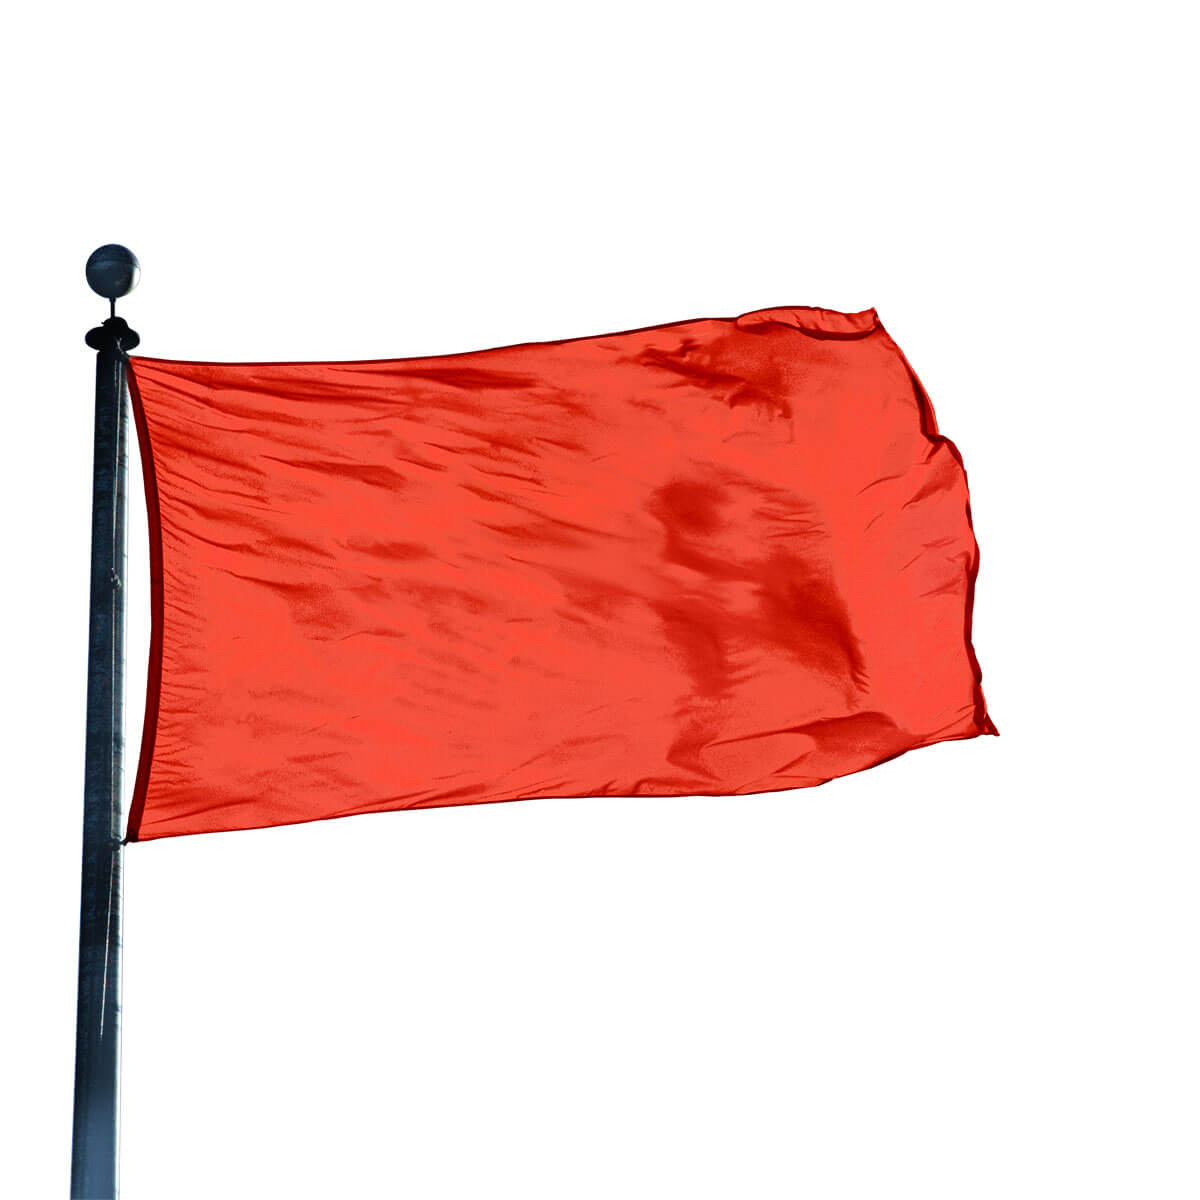 Warm Red Color Flag 12 In X 18